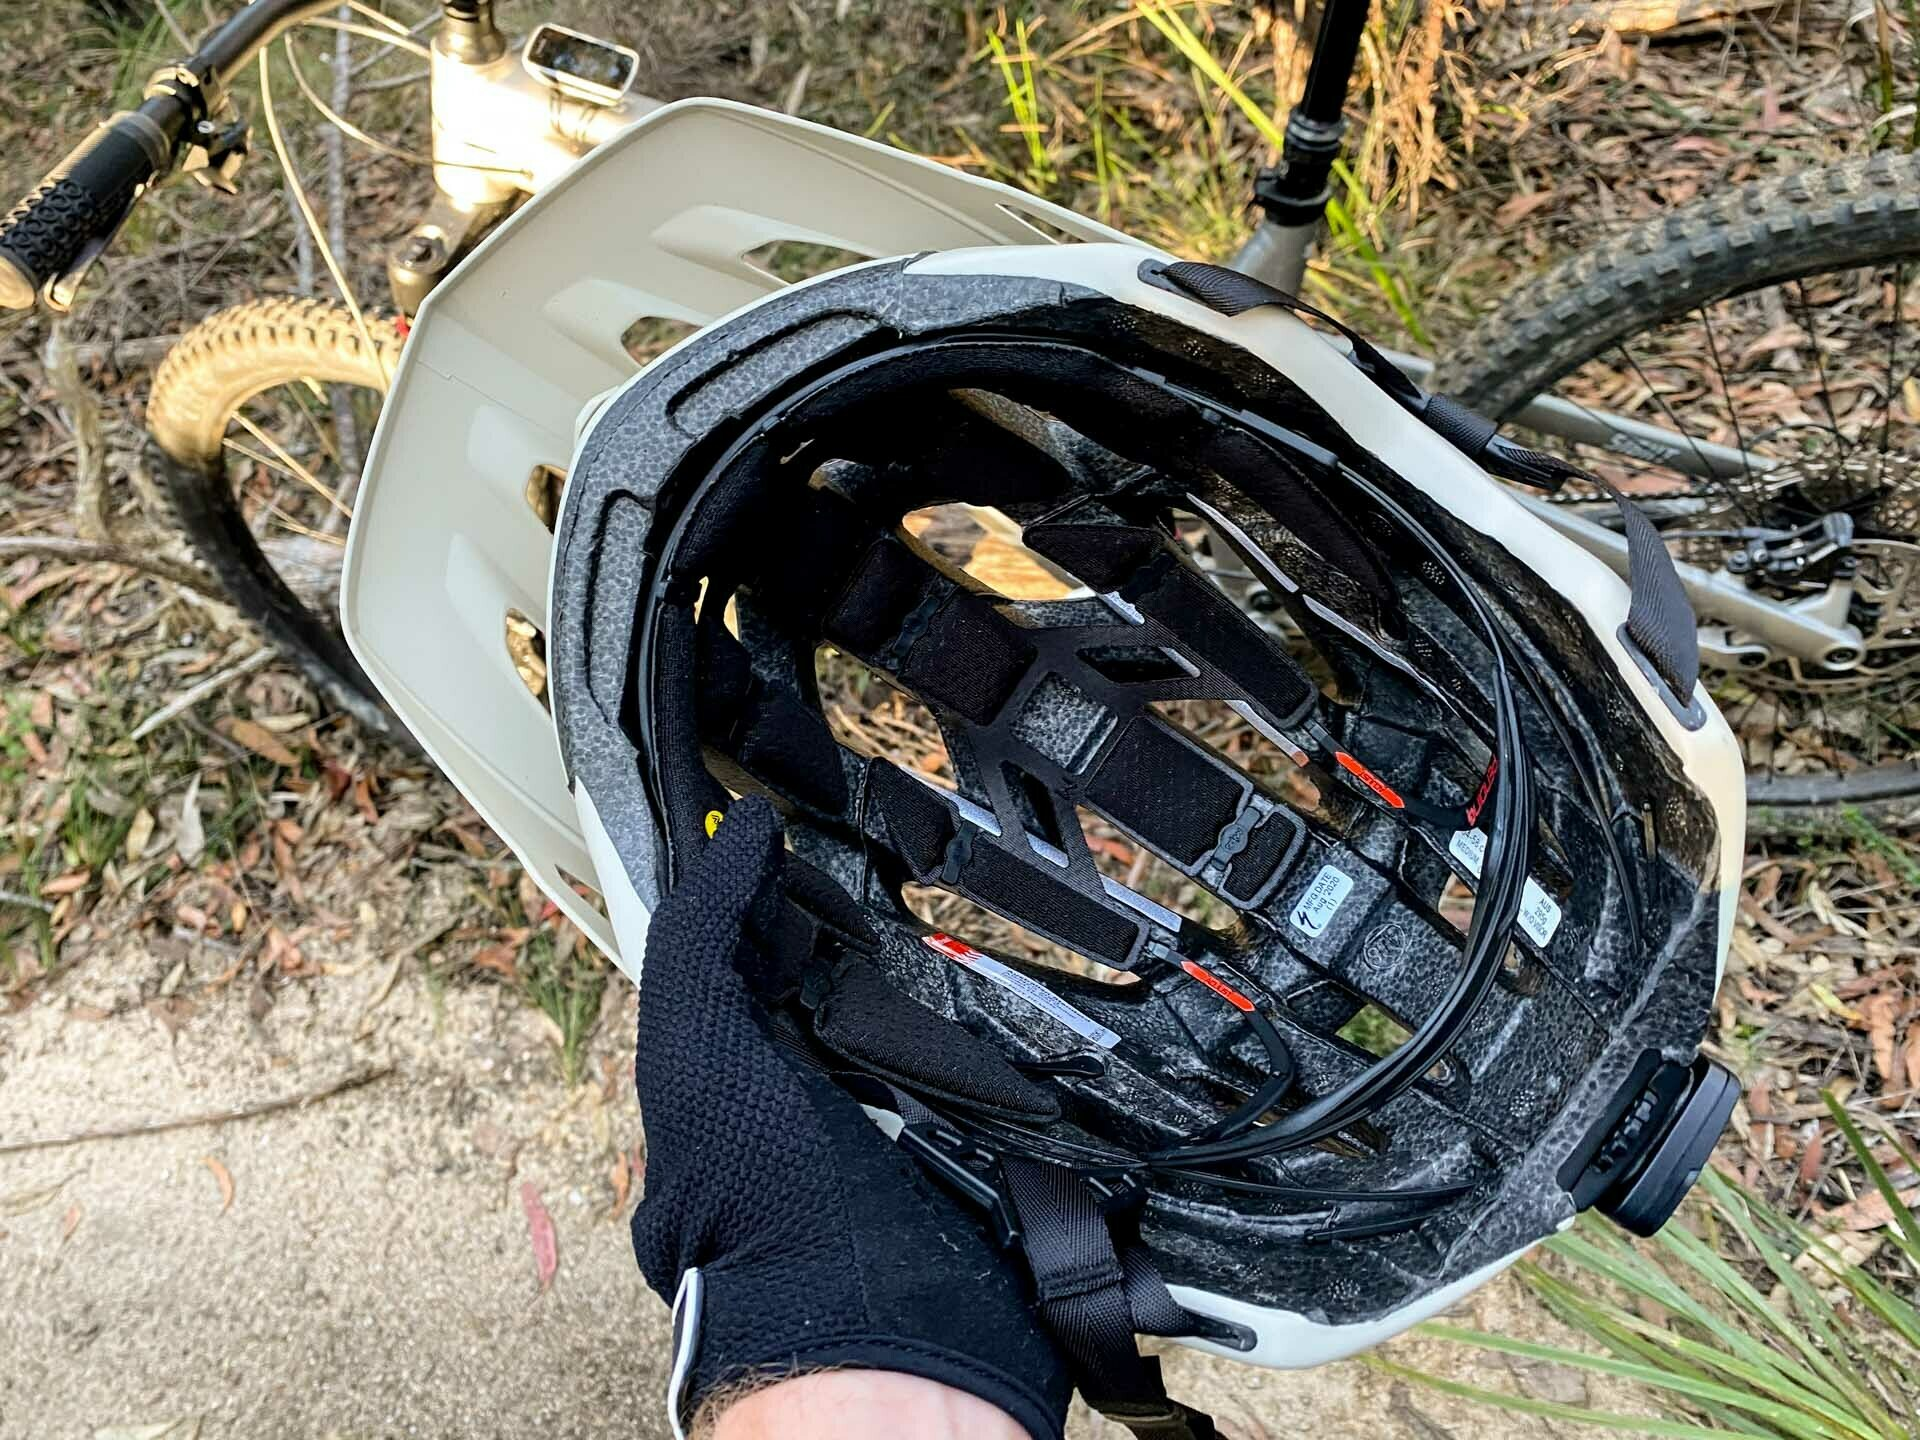 Specialized Ambush with ANGi Mountain Bike Helmet – Gear Review, tim ashelford, lawson trails, blue mountains, nsw, mips